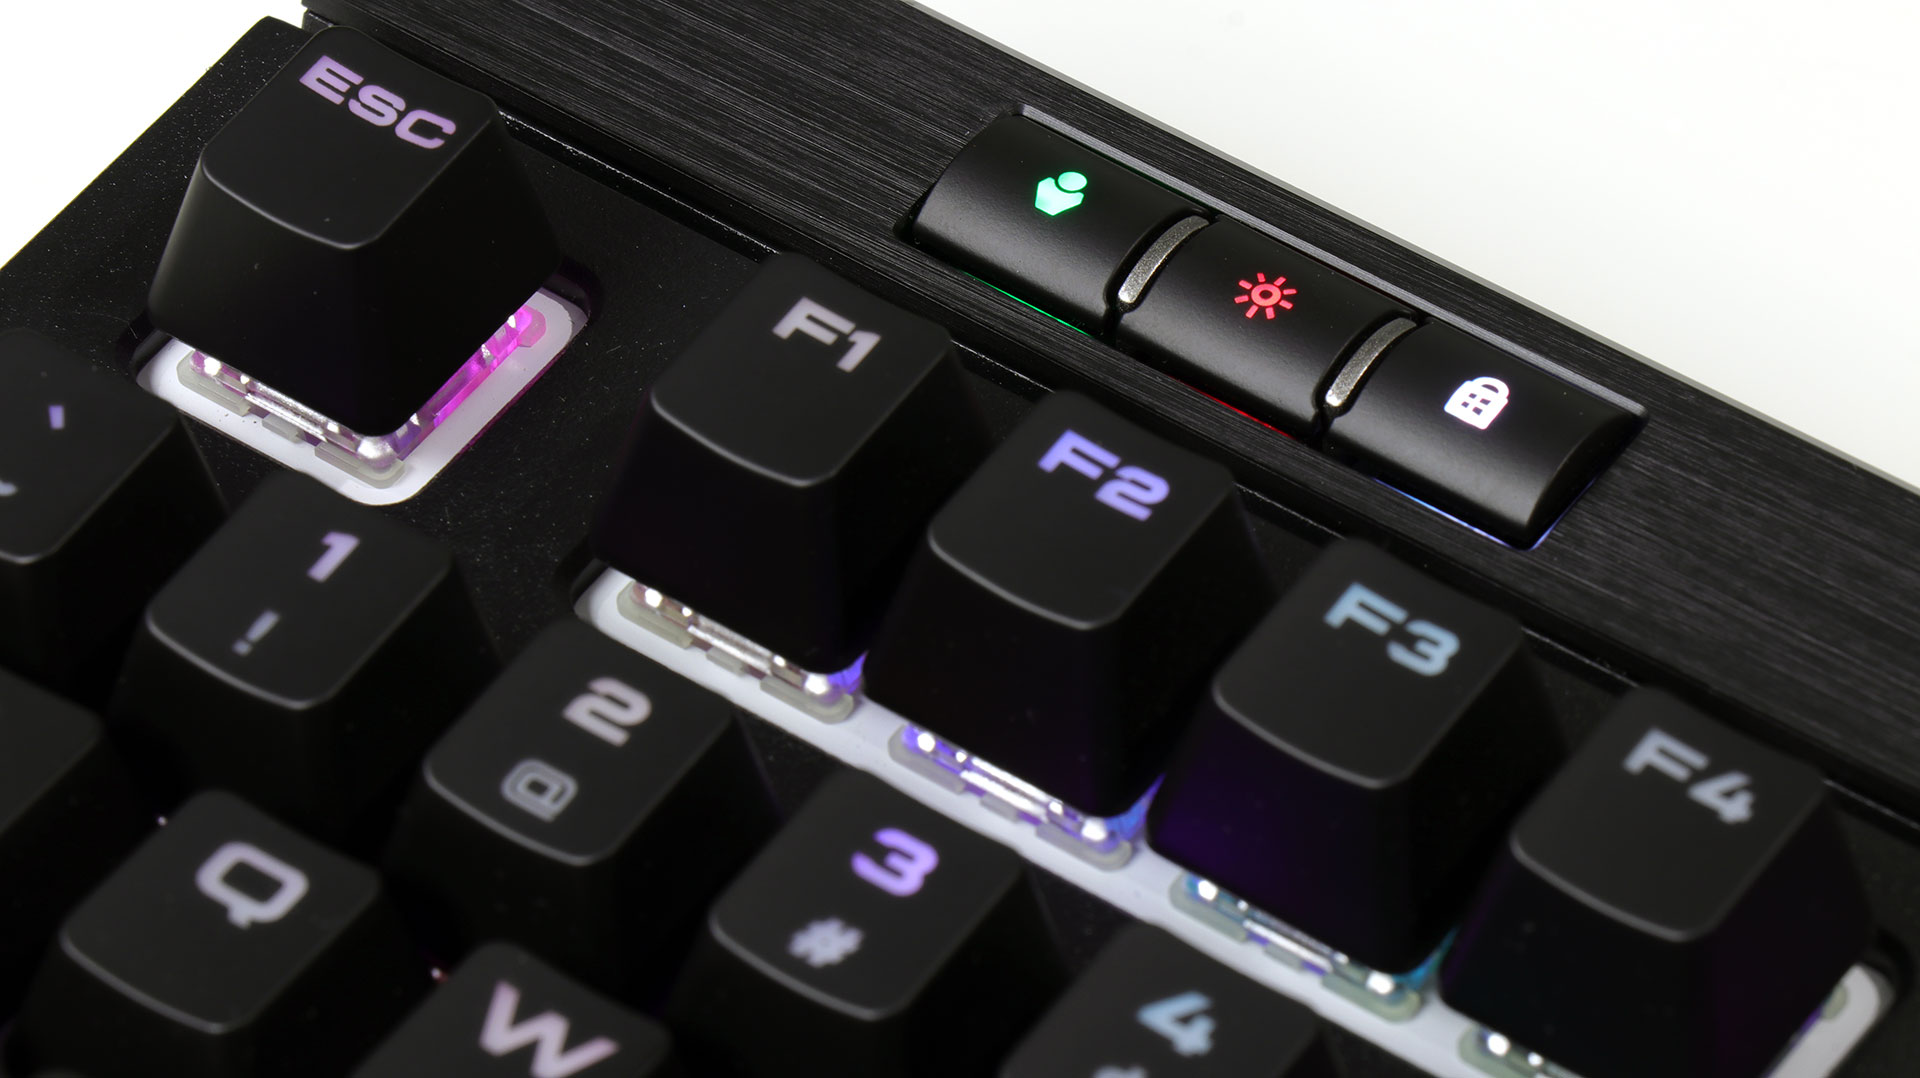 Corsair K70 RGB MK.2 And Strafe RGB MK.2 Gaming Keyboards Review: Killer Decks